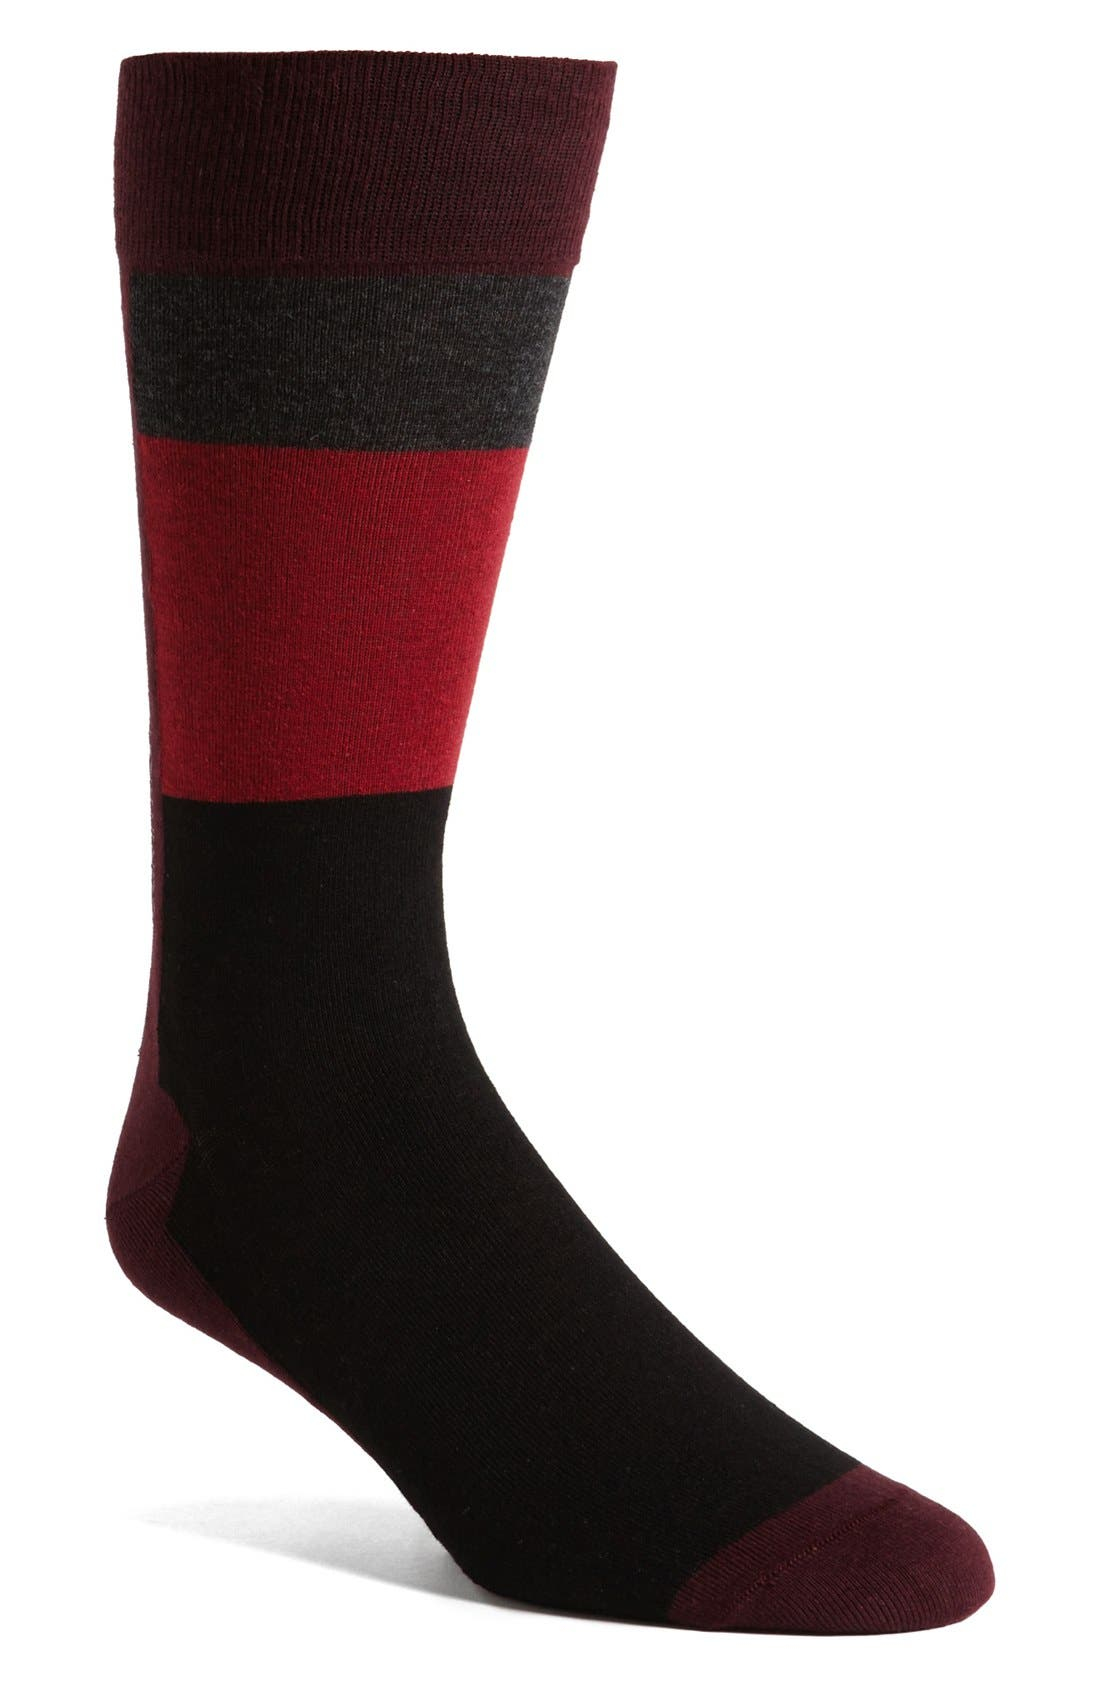 Alternate Image 1 Selected - Calvin Klein Colorblock Socks